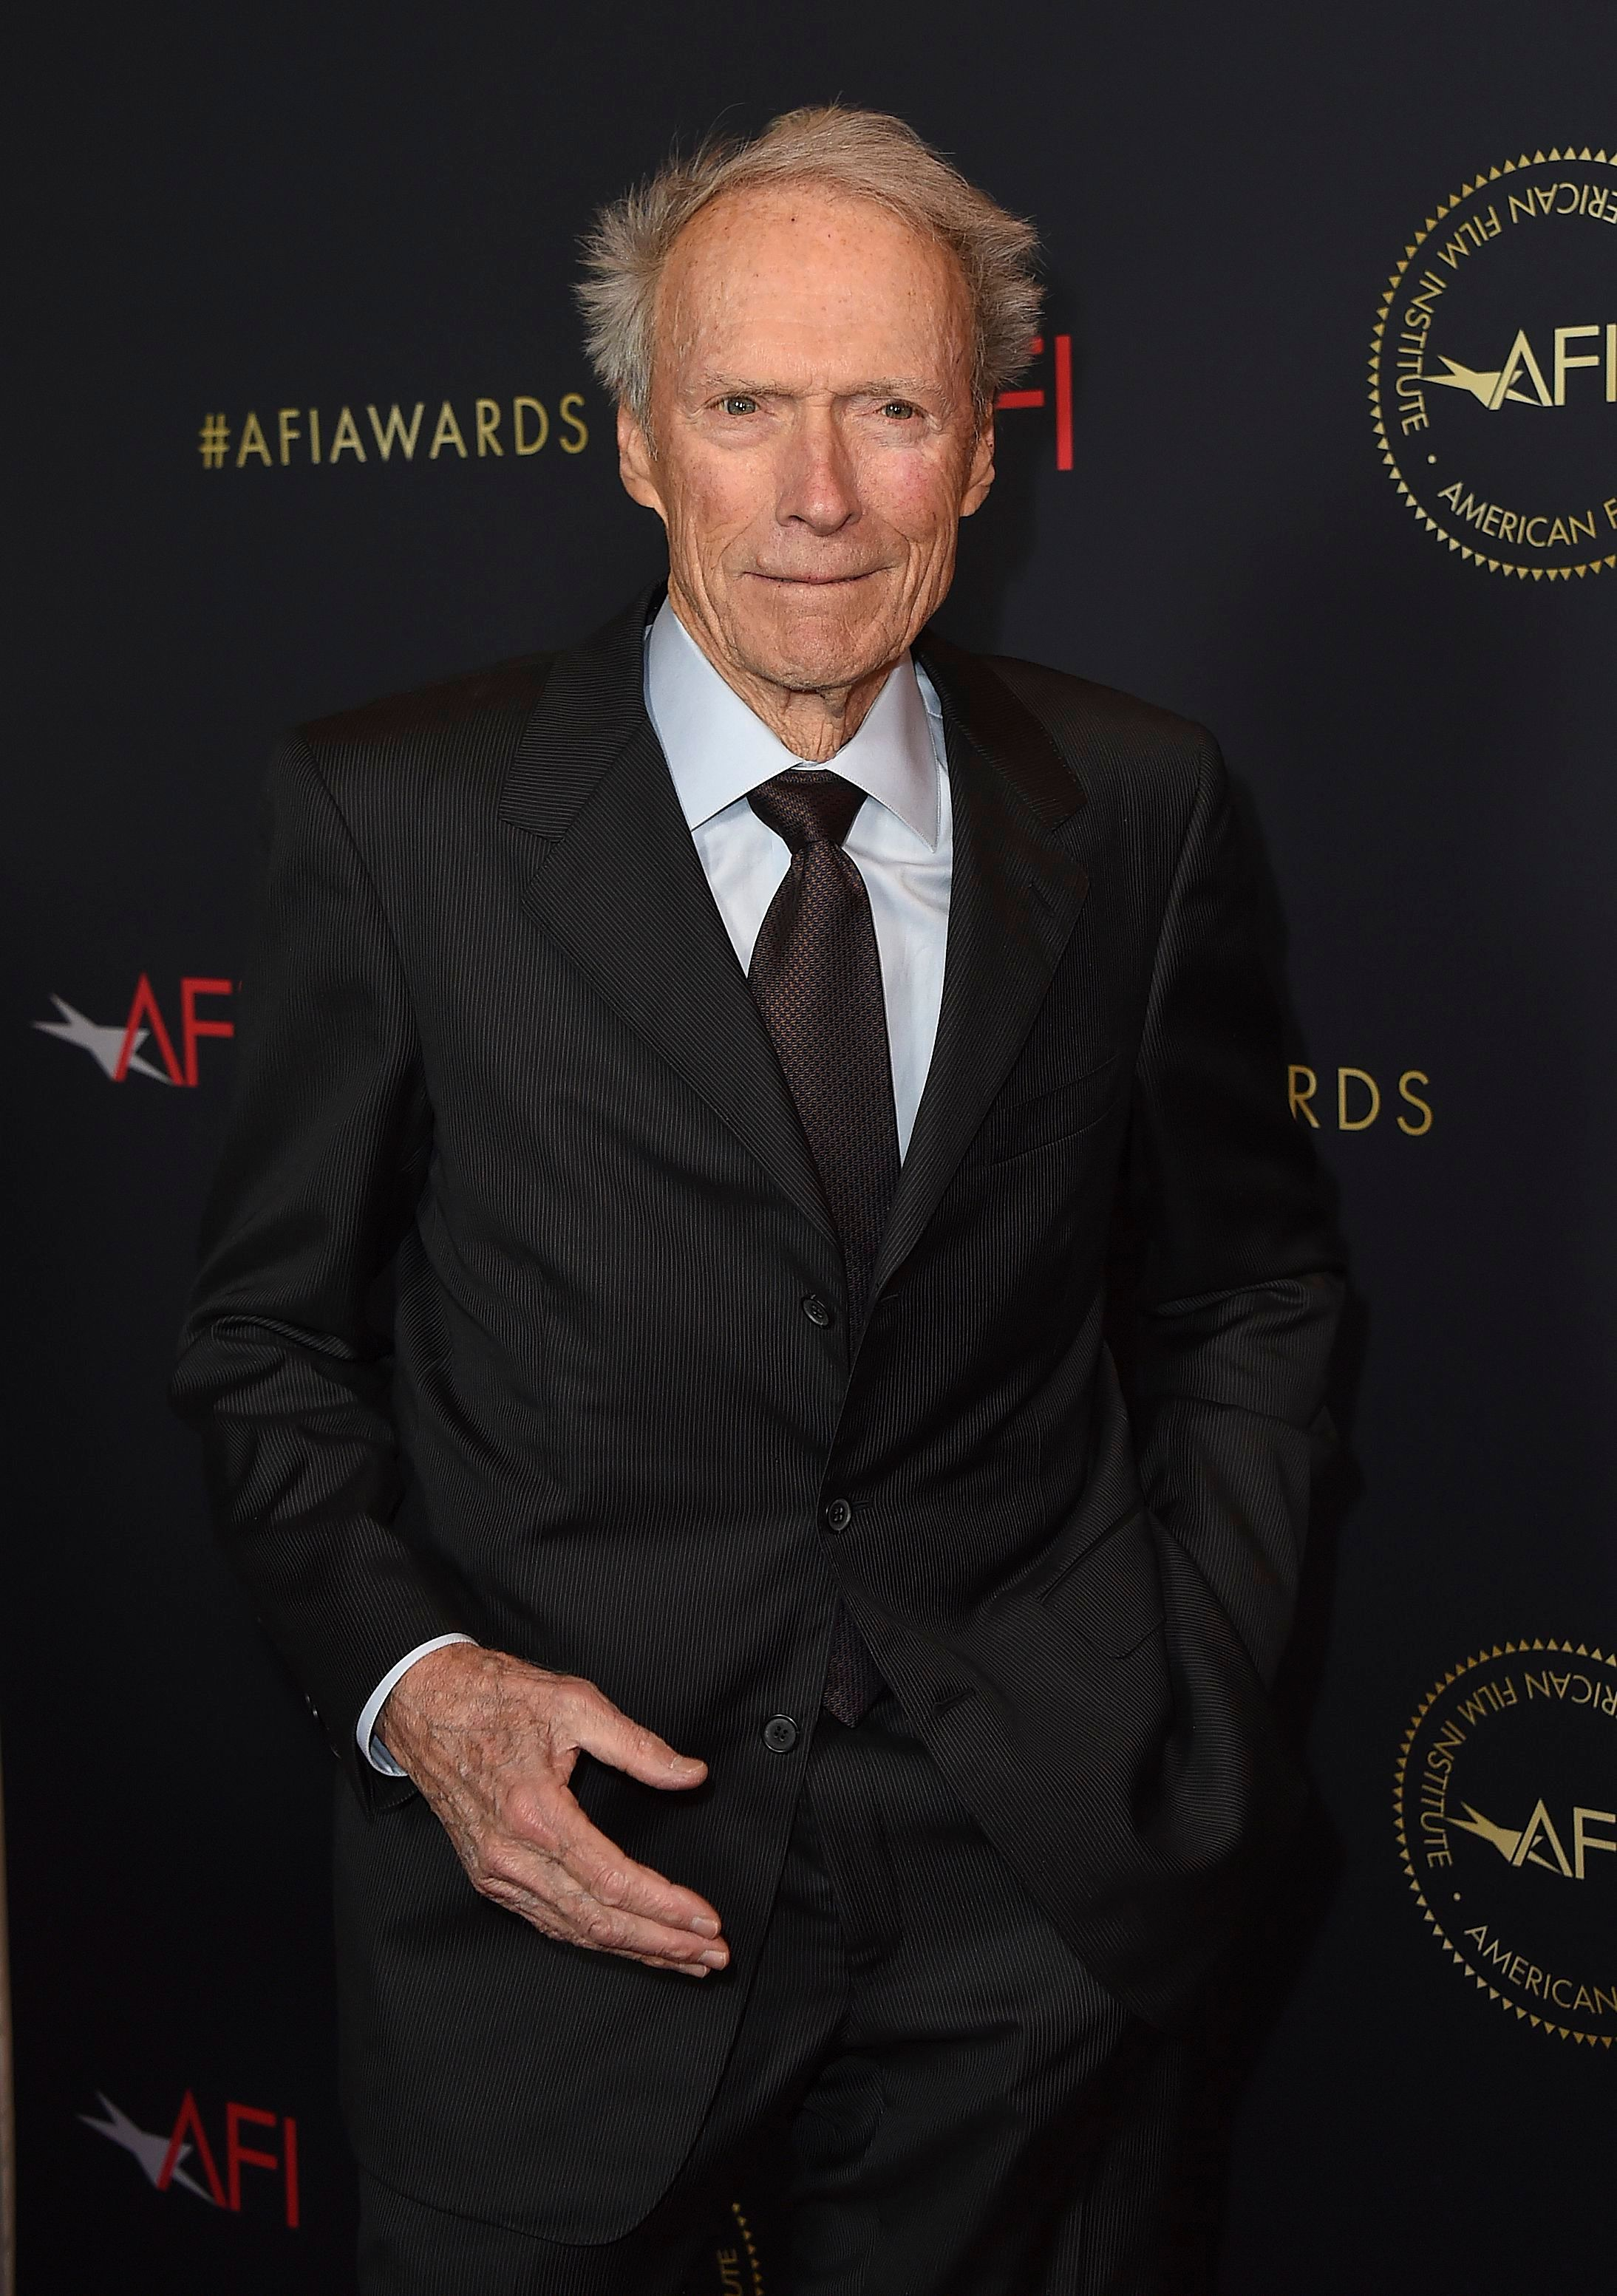 Clint Eastwood, 89, Puts Retirement Rumors to Rest: 'It's Nice to Be Able to Have a Paying Job'